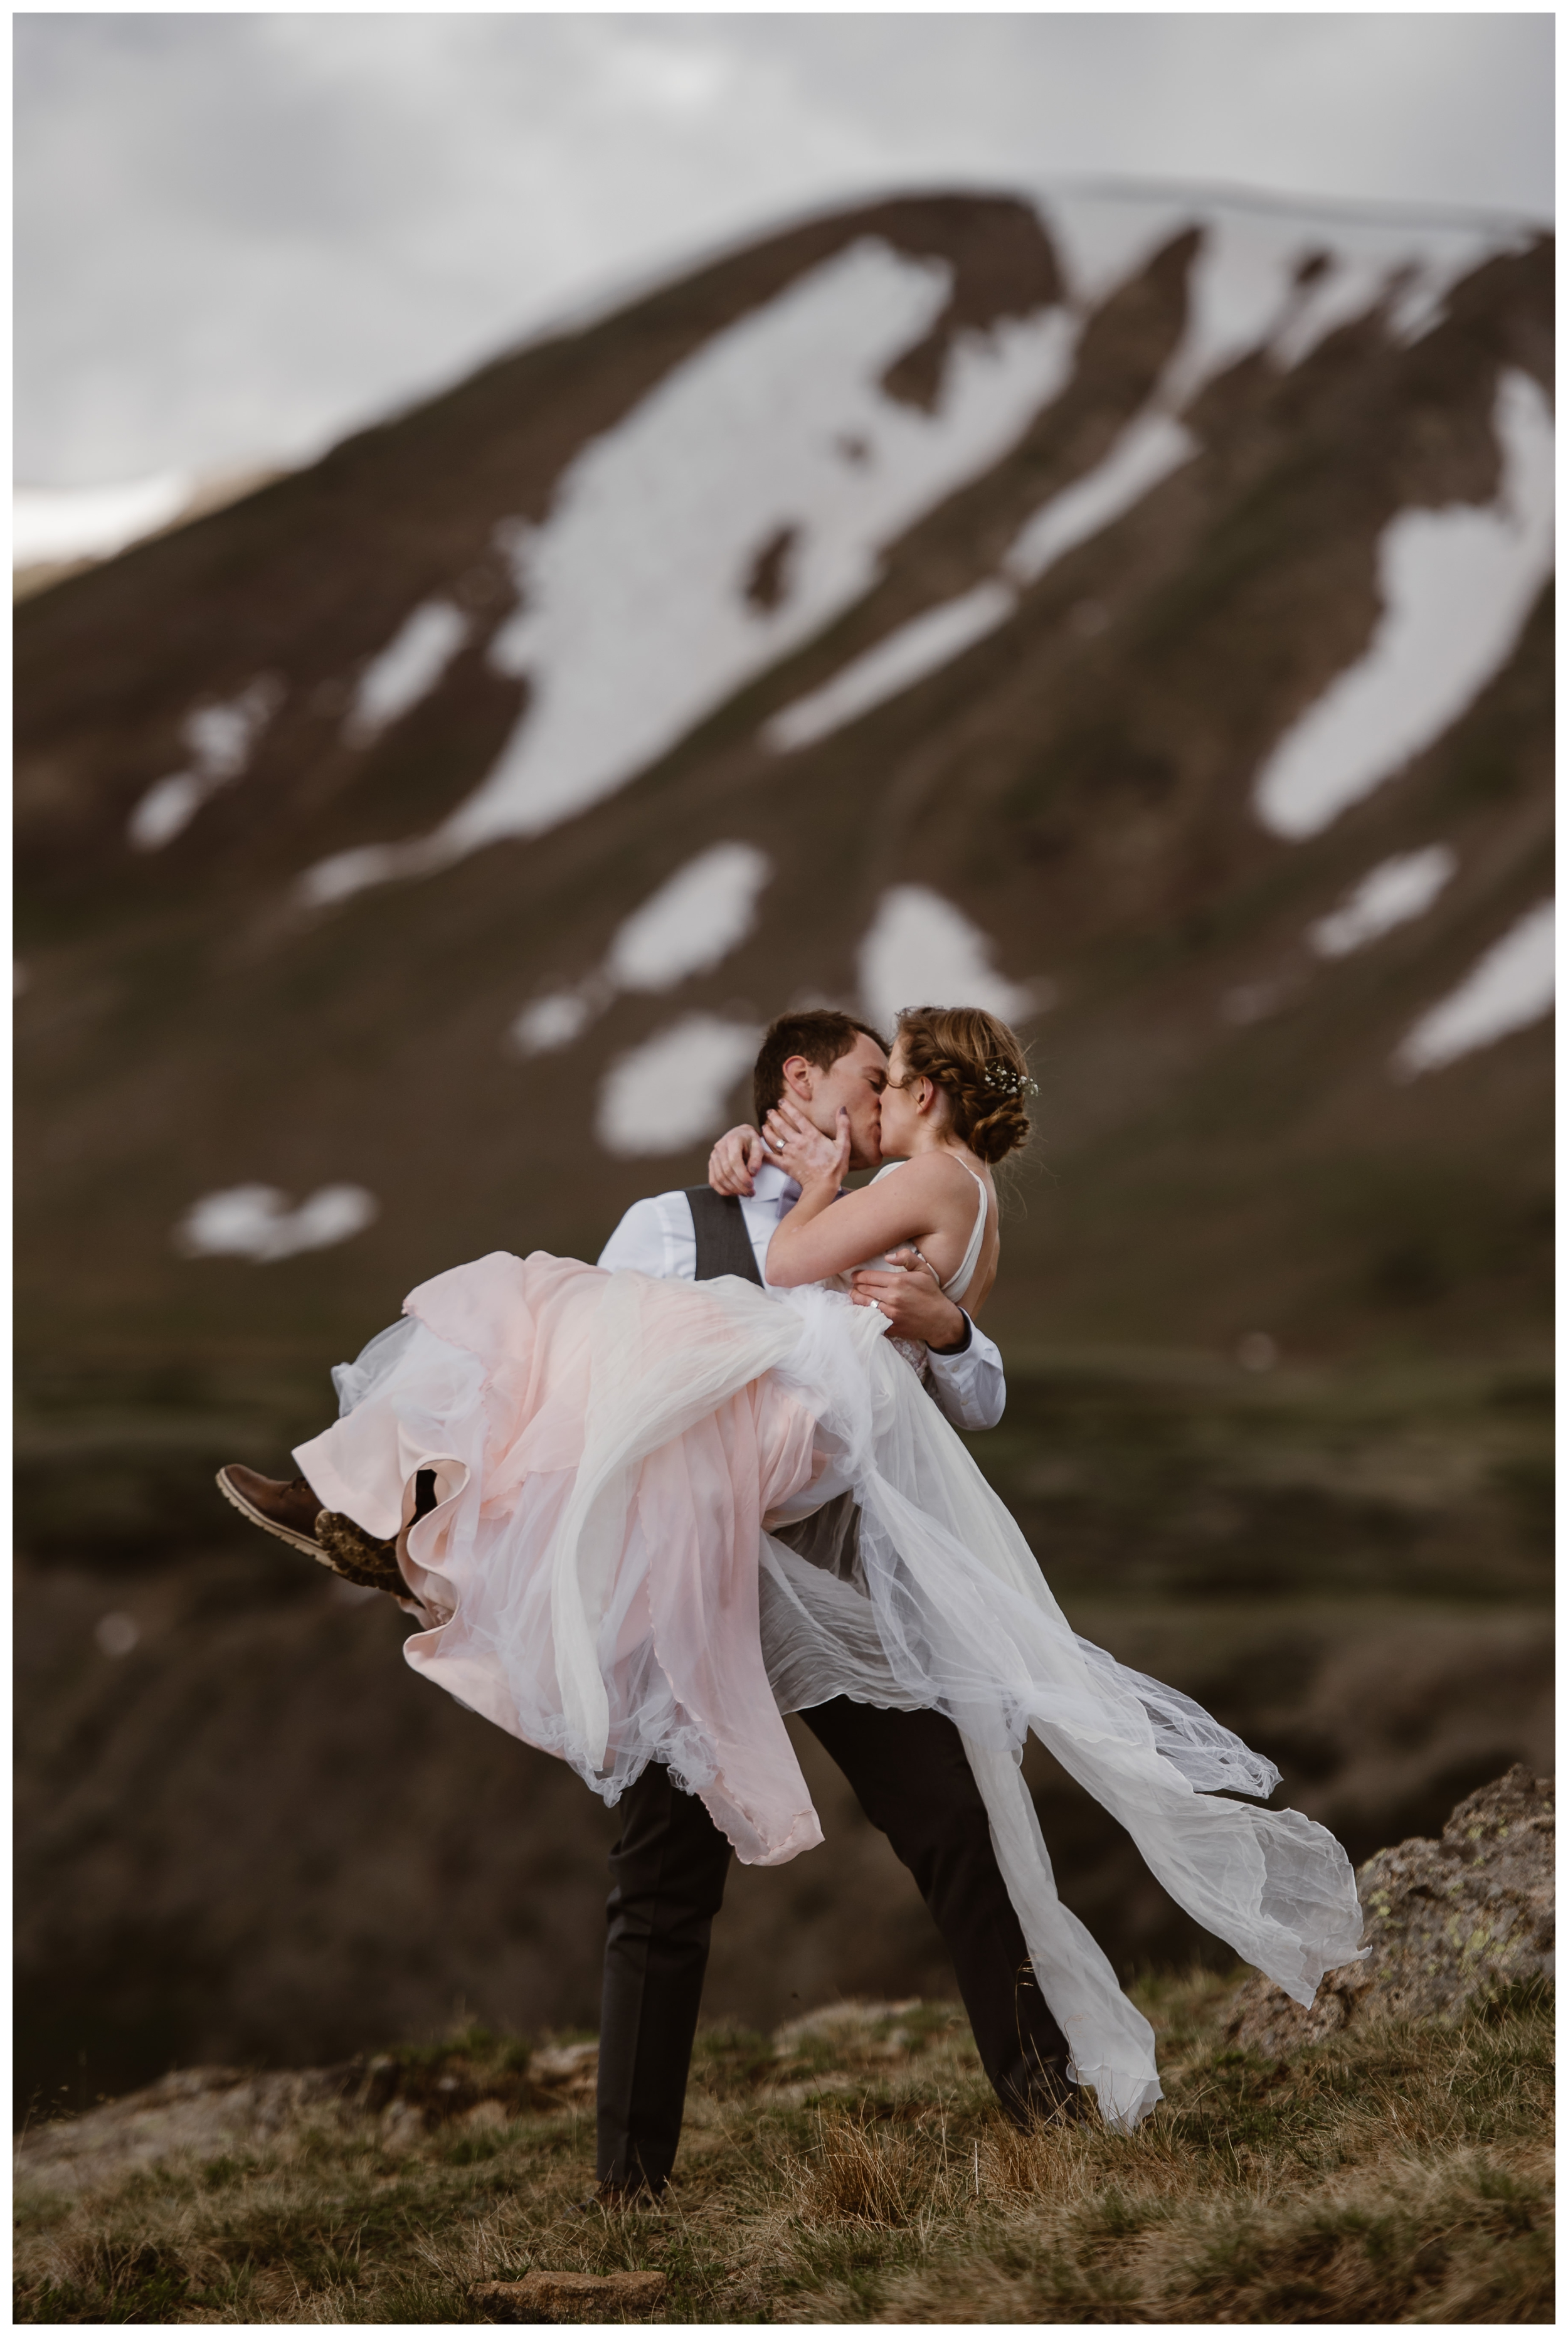 Marcela and Vasily embrace on the top of Independence Pass following their adventurous outdoor sunrise hiking elopement ceremony. Photo by Maddie Mae, Adventure Instead.